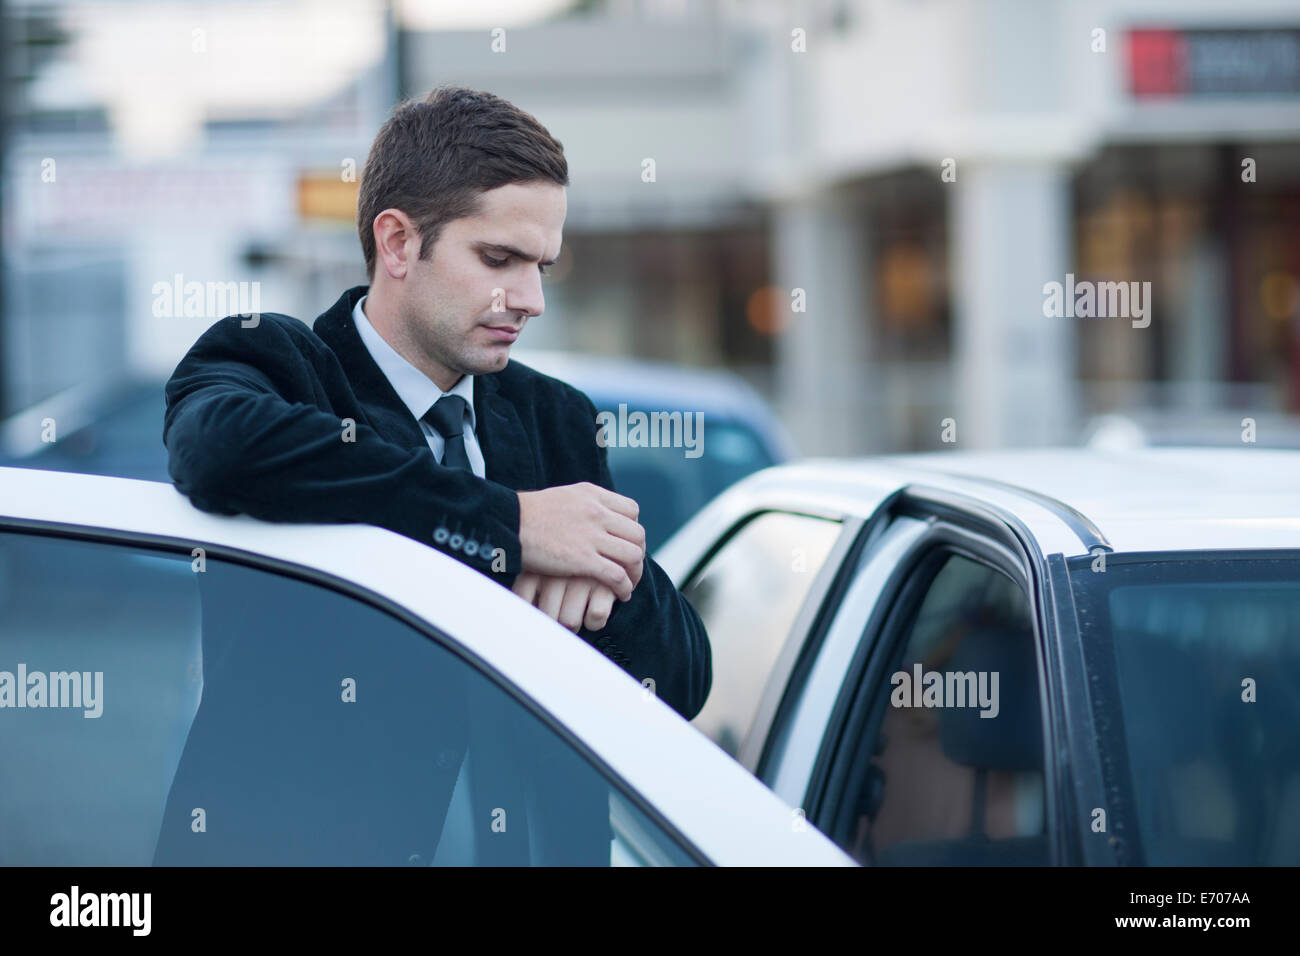 Mid adult businessman looking at watch in city traffic jam - Stock Image